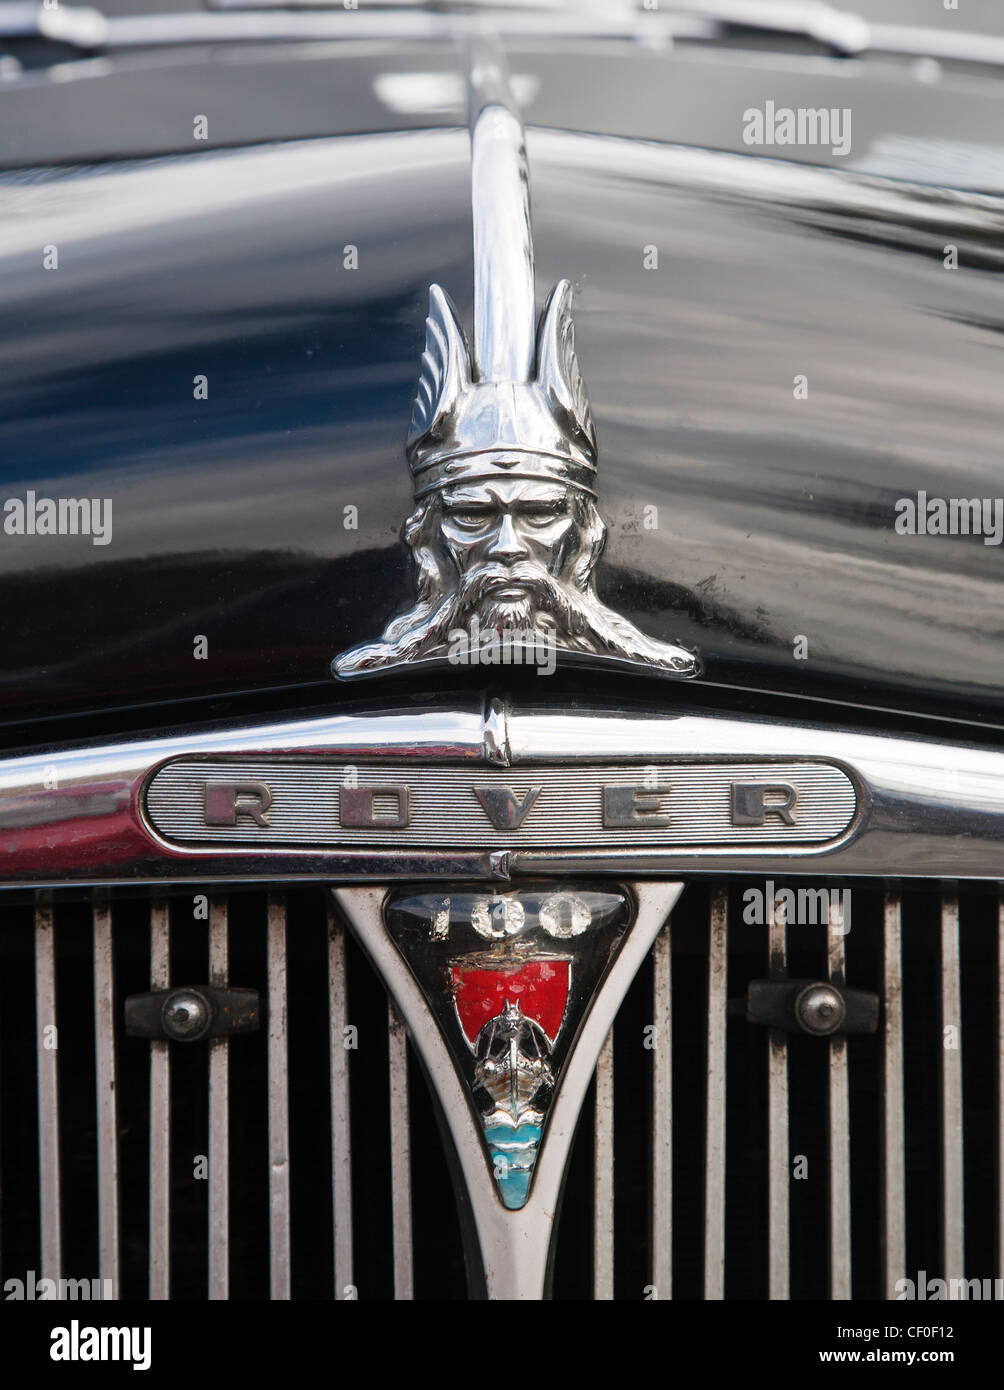 Front marque badge of an old Rover 100 - Stock Image